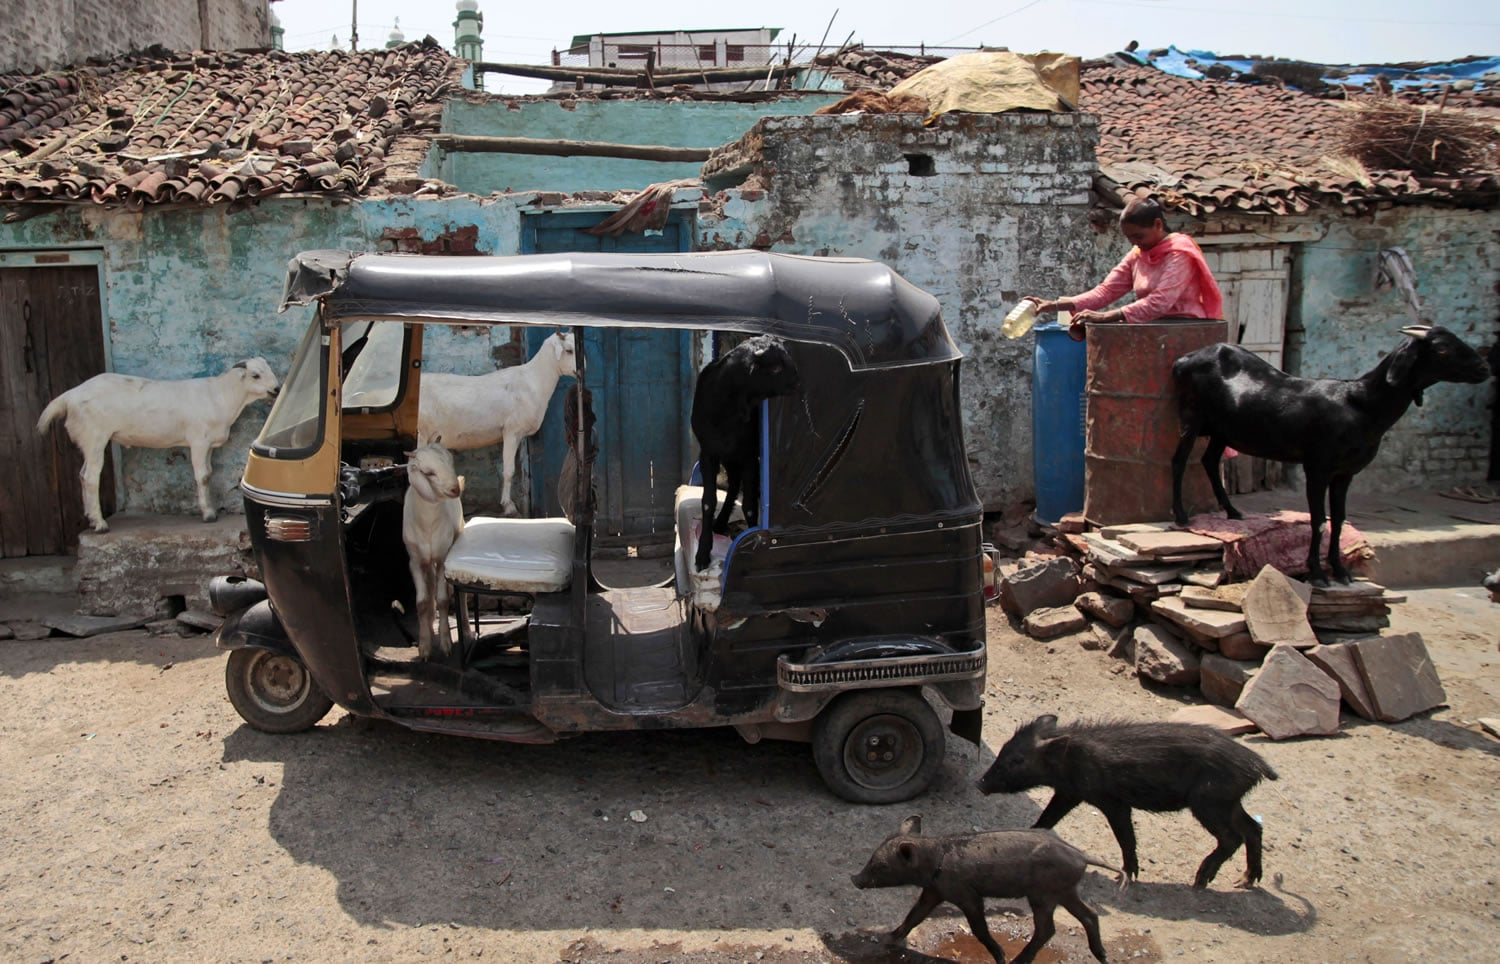 In this May 10, 2012 photo, animals walk in and around an auto rickshaw in the neighborhood where Fatima Munshi lives in Khandwa, India. Living in Australia, Saroo Brierley, 30, was reunited with his biological mother, Munshi, in February 2012, 25 years after an ill-fated train ride left him an orphan on the streets of Calcutta.